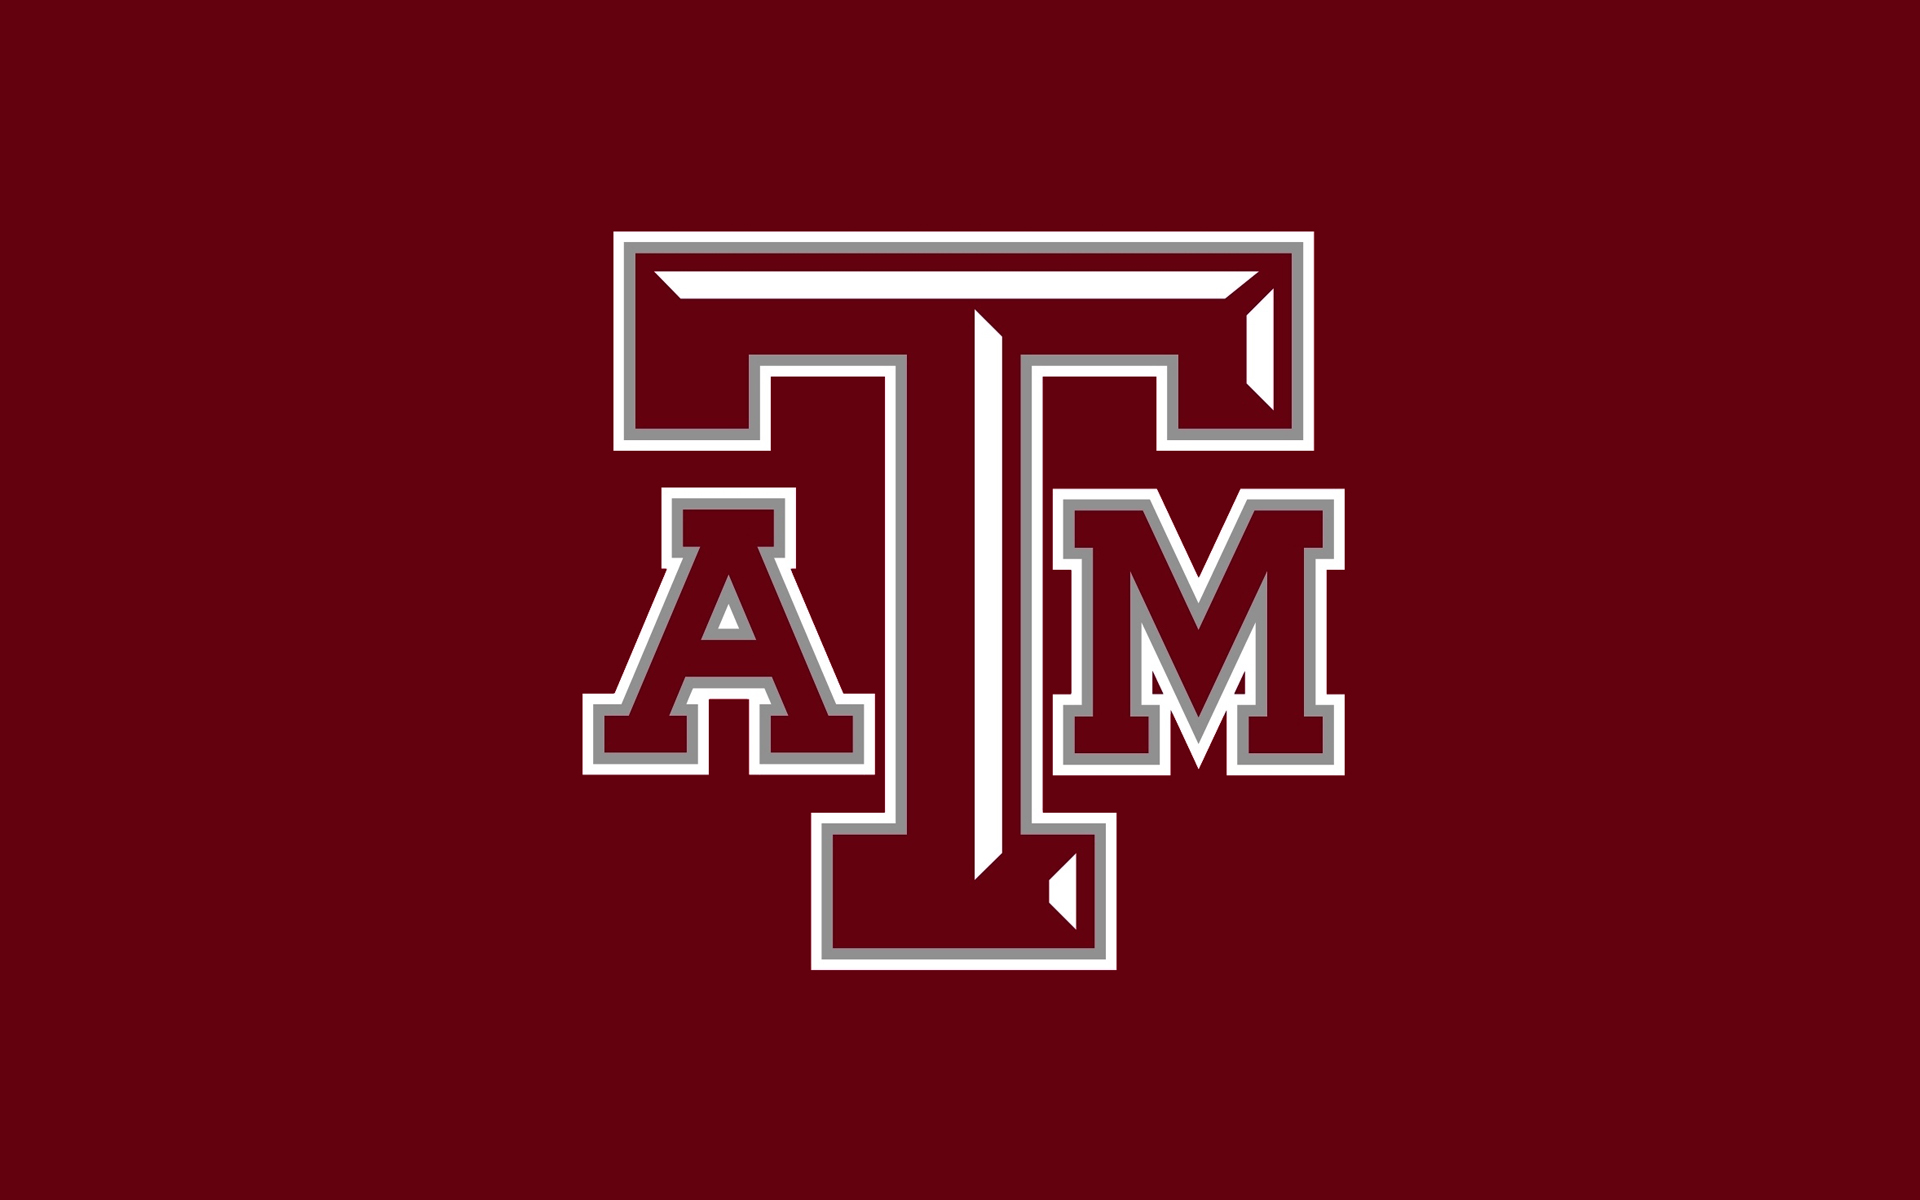 Texas a and m Logos ed147086dae